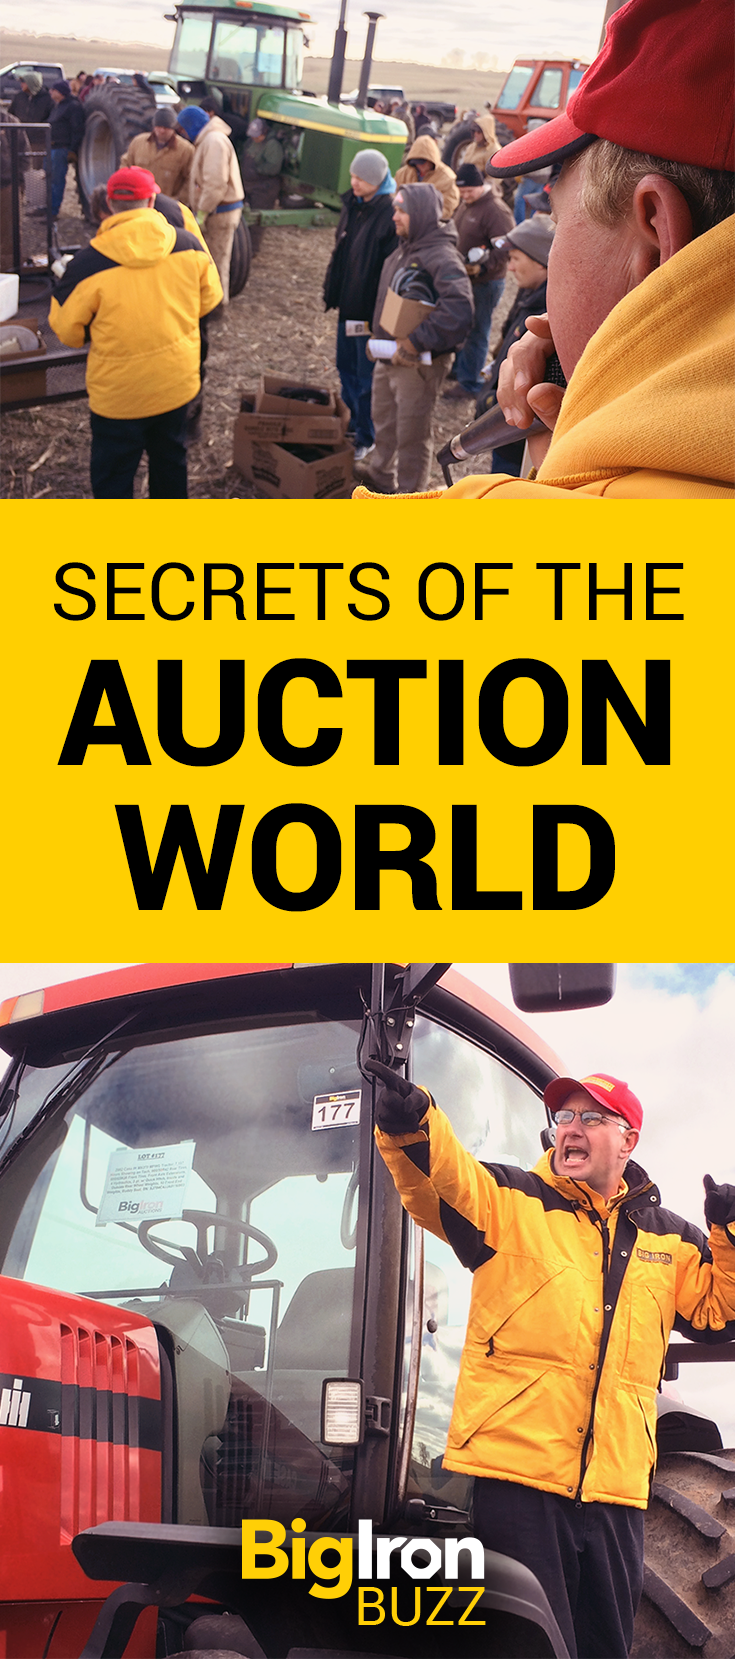 Mark Stock, co-owner of BigIron Auctions, gives us an inside view into what happens behind the scenes at an auction. It's all about preparations, psychology, and farmer logic. Learn more about how and why BigIron does business a little bit differently.